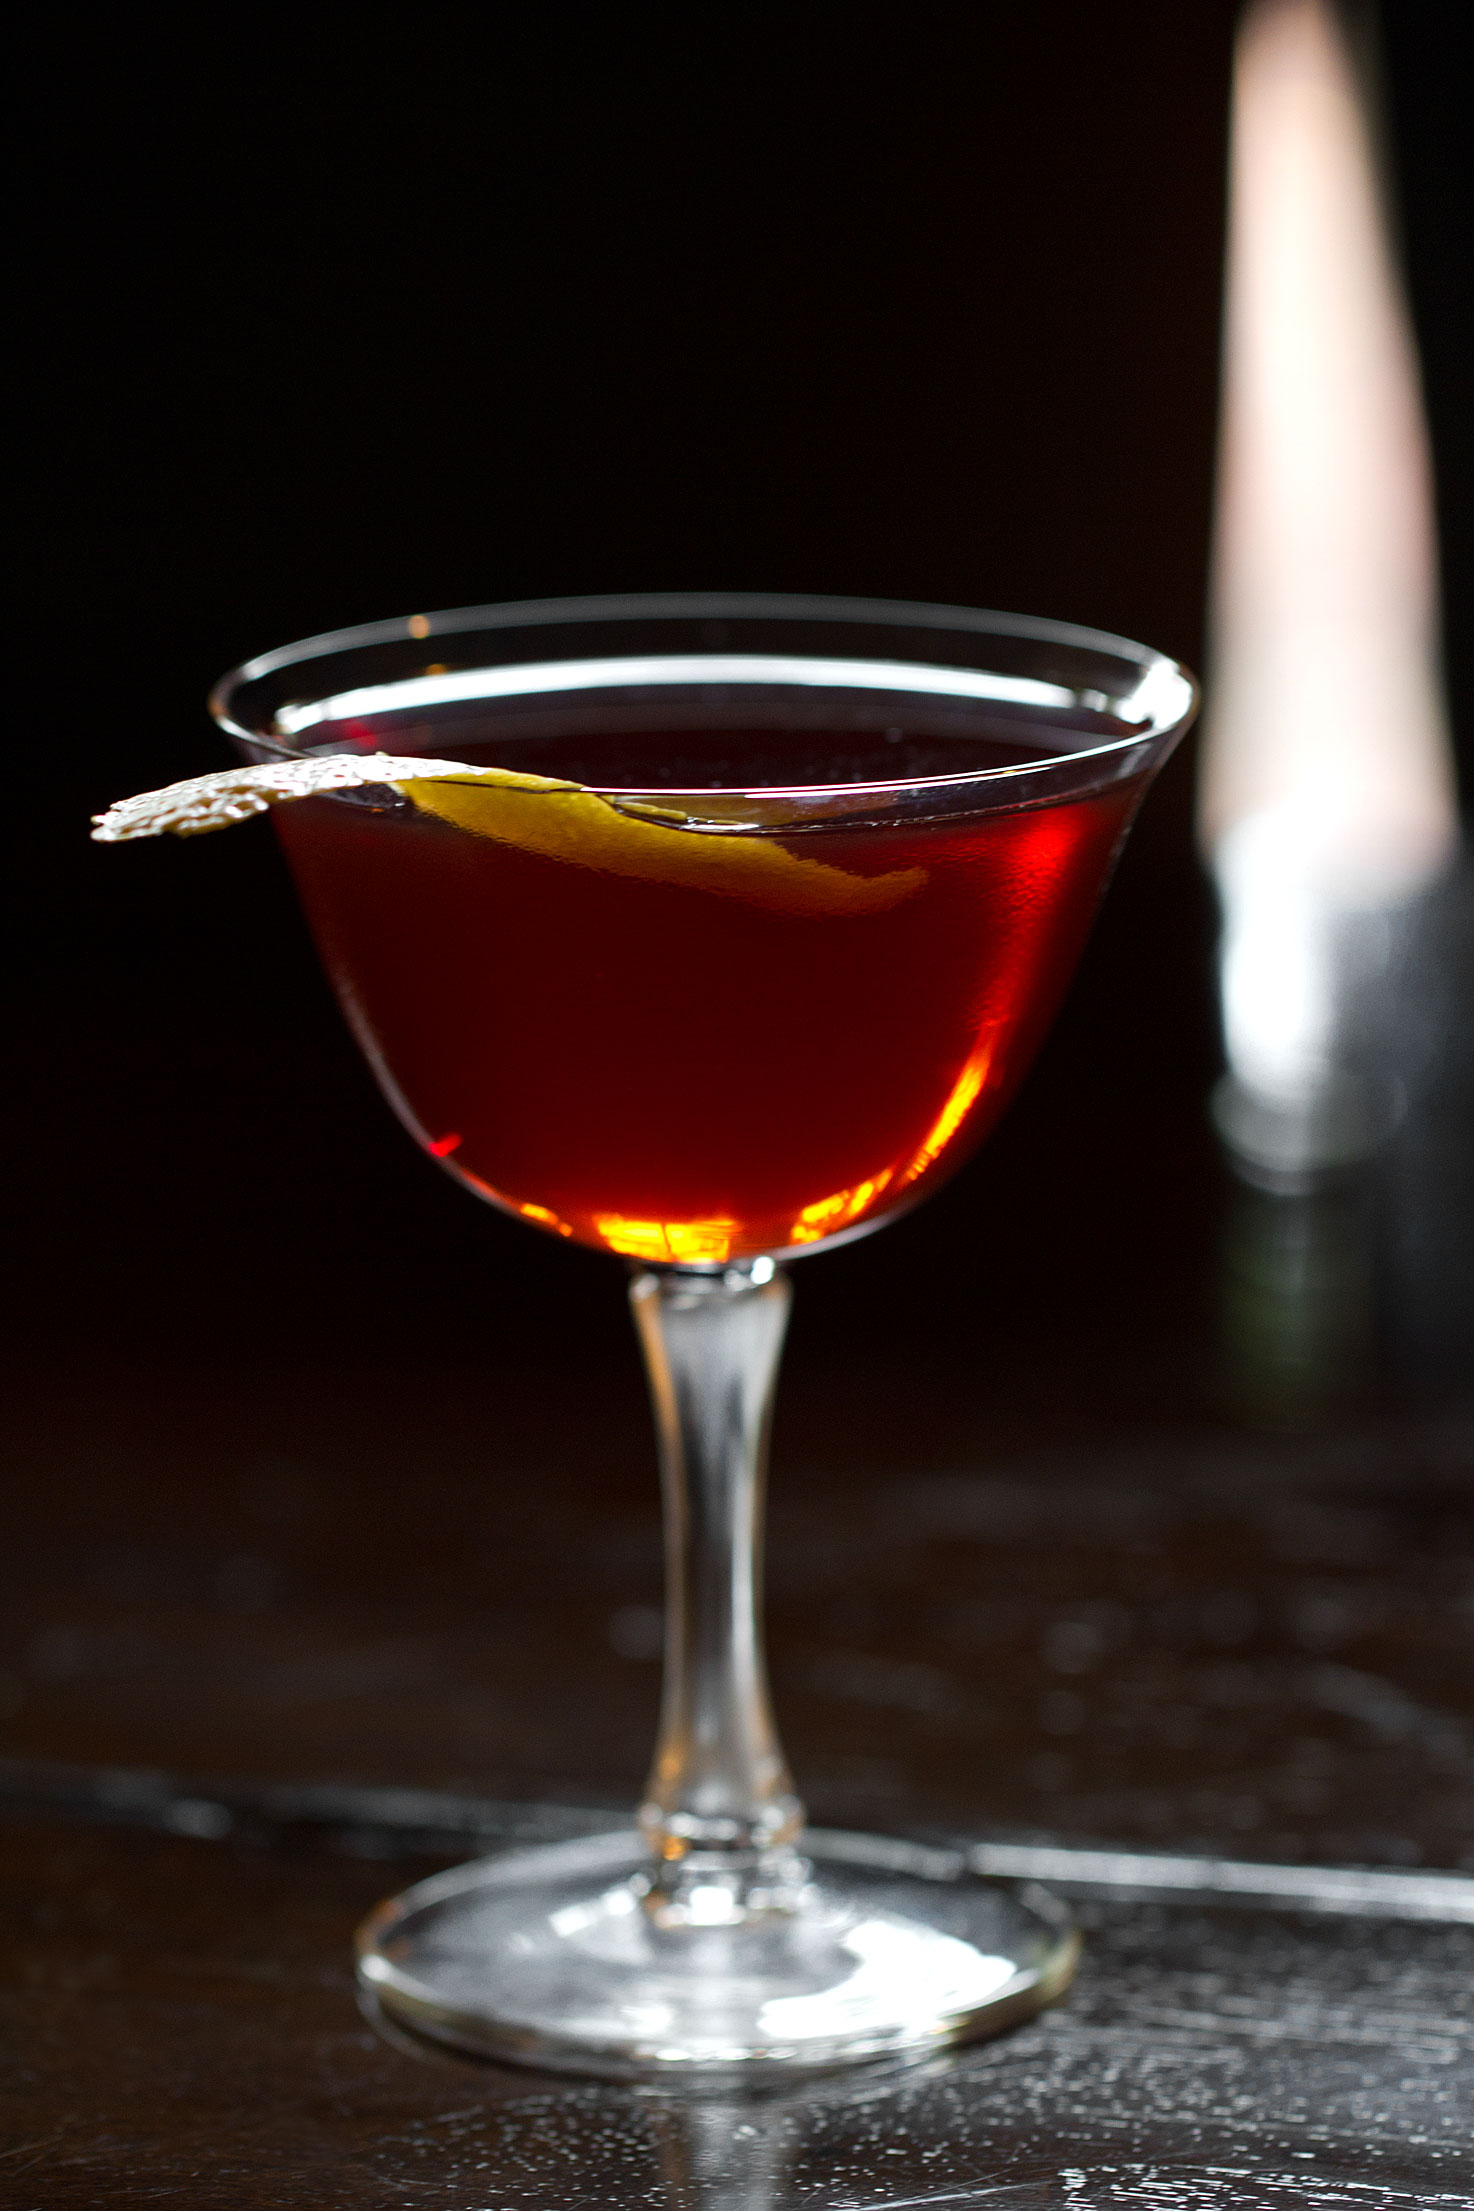 The Vichy Cycle cocktail